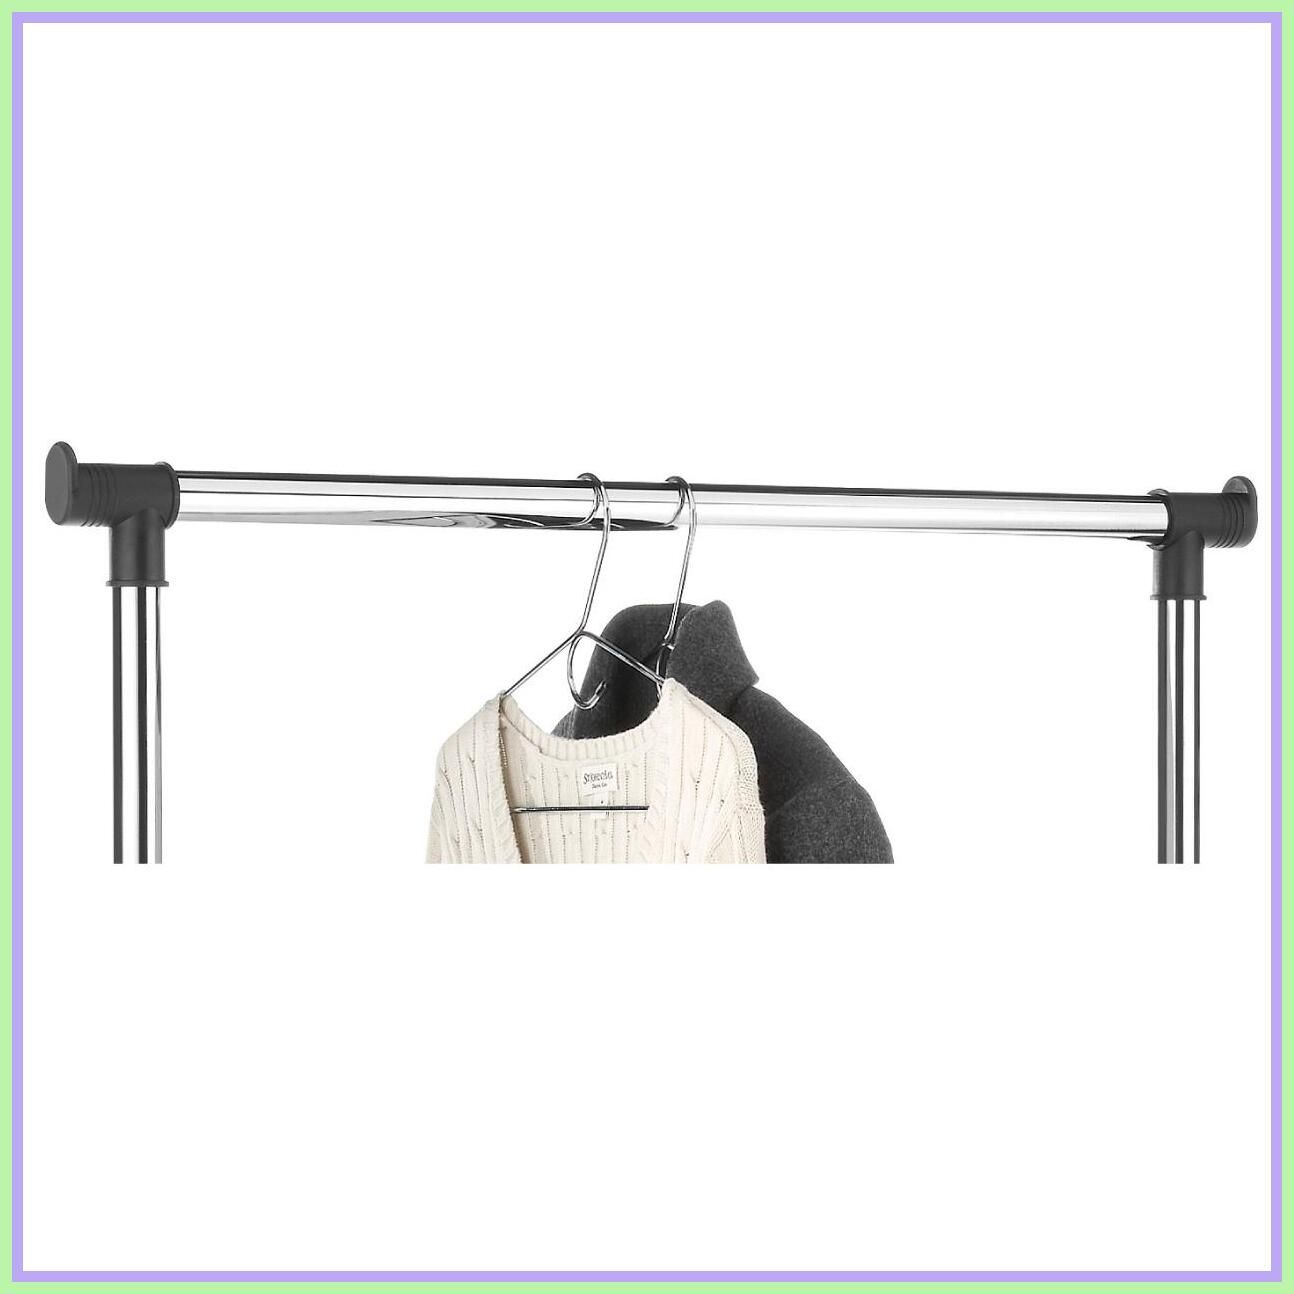 126 Reference Of Whitmor Supreme Garment Rack Chrome With Wheels